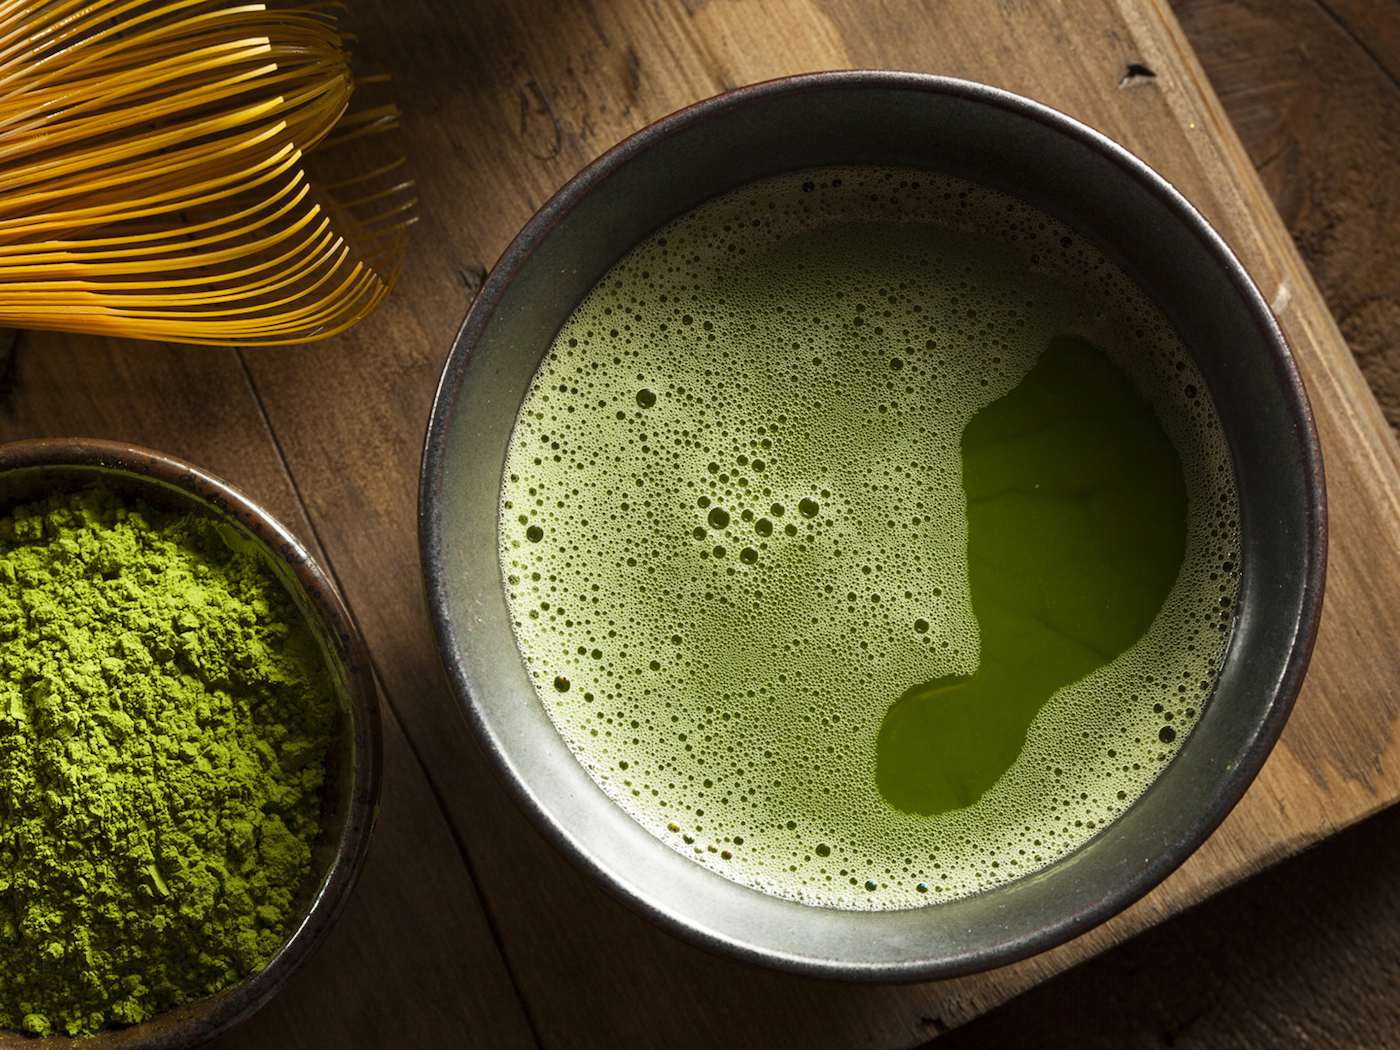 experts_health-benefits-of-matcha-green-tea_2716x1811_000055982118